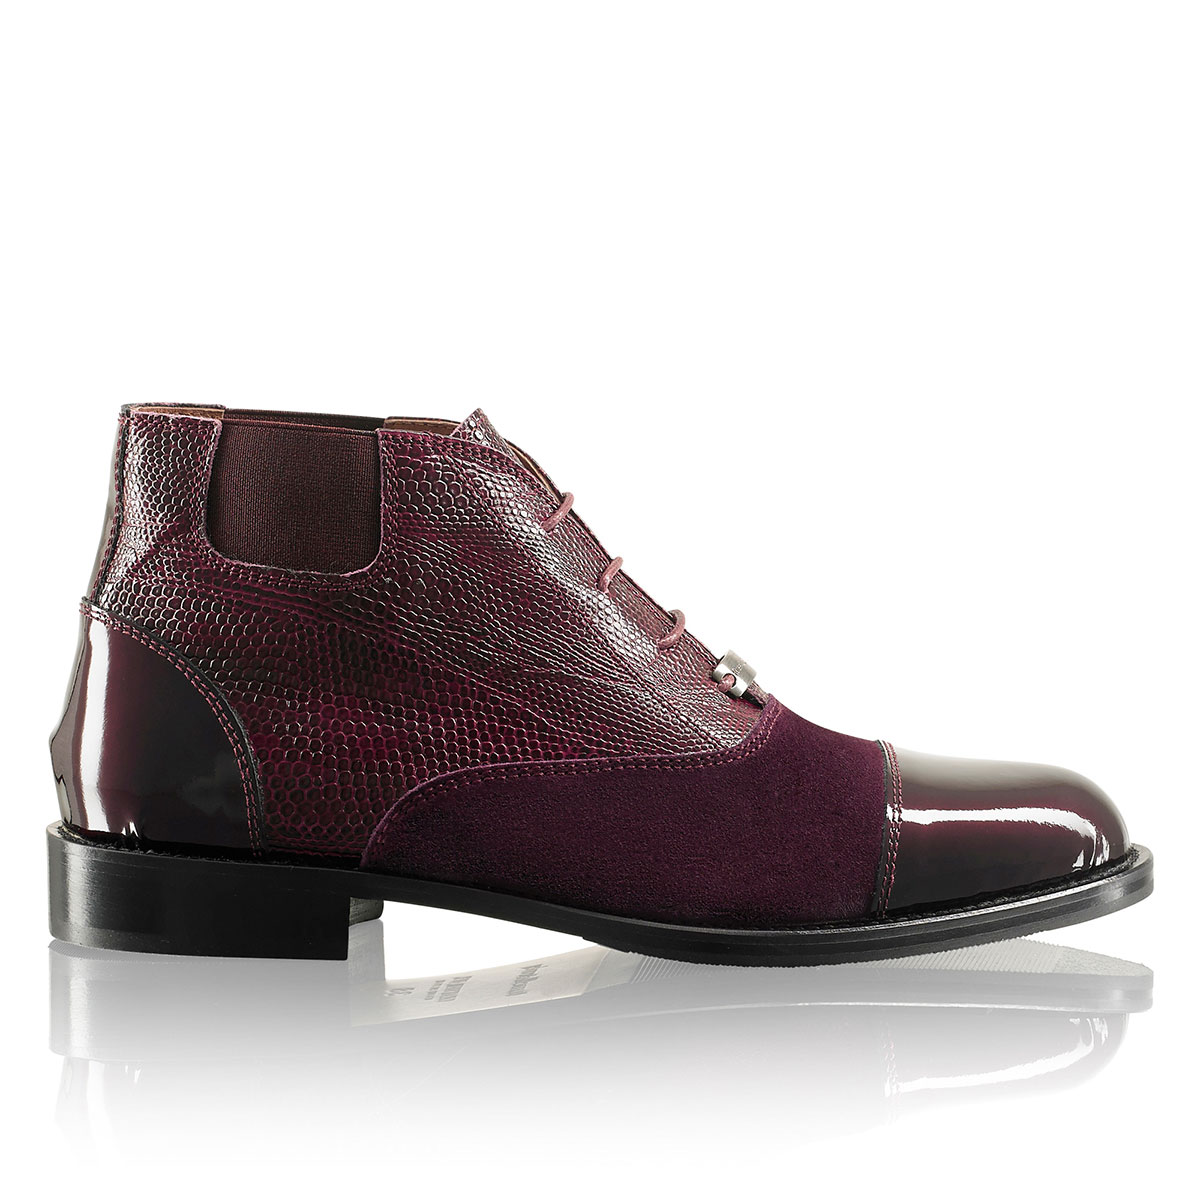 russell and bromley shoes outlet